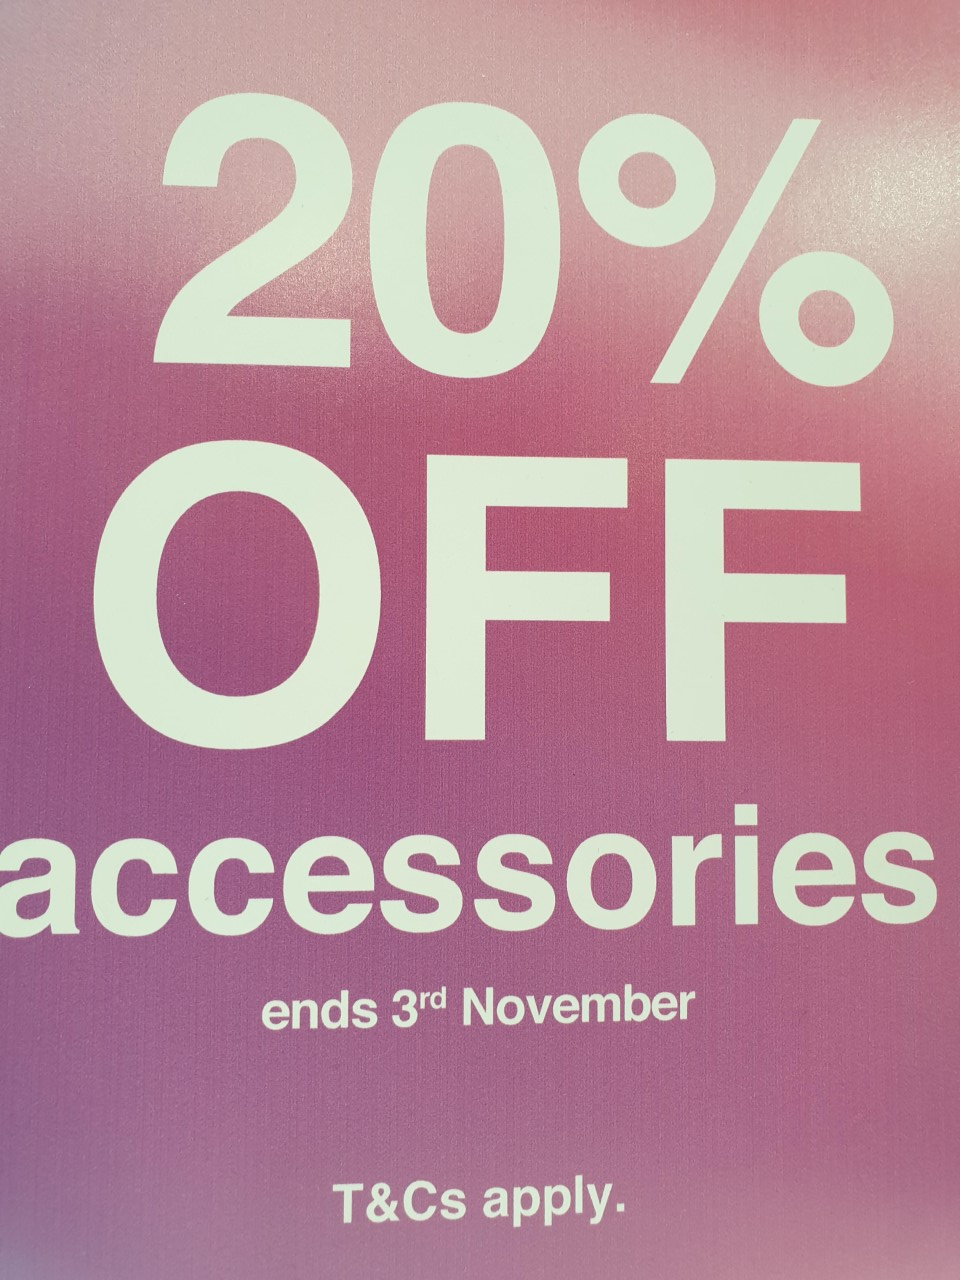 3 Store News 20% off accessories